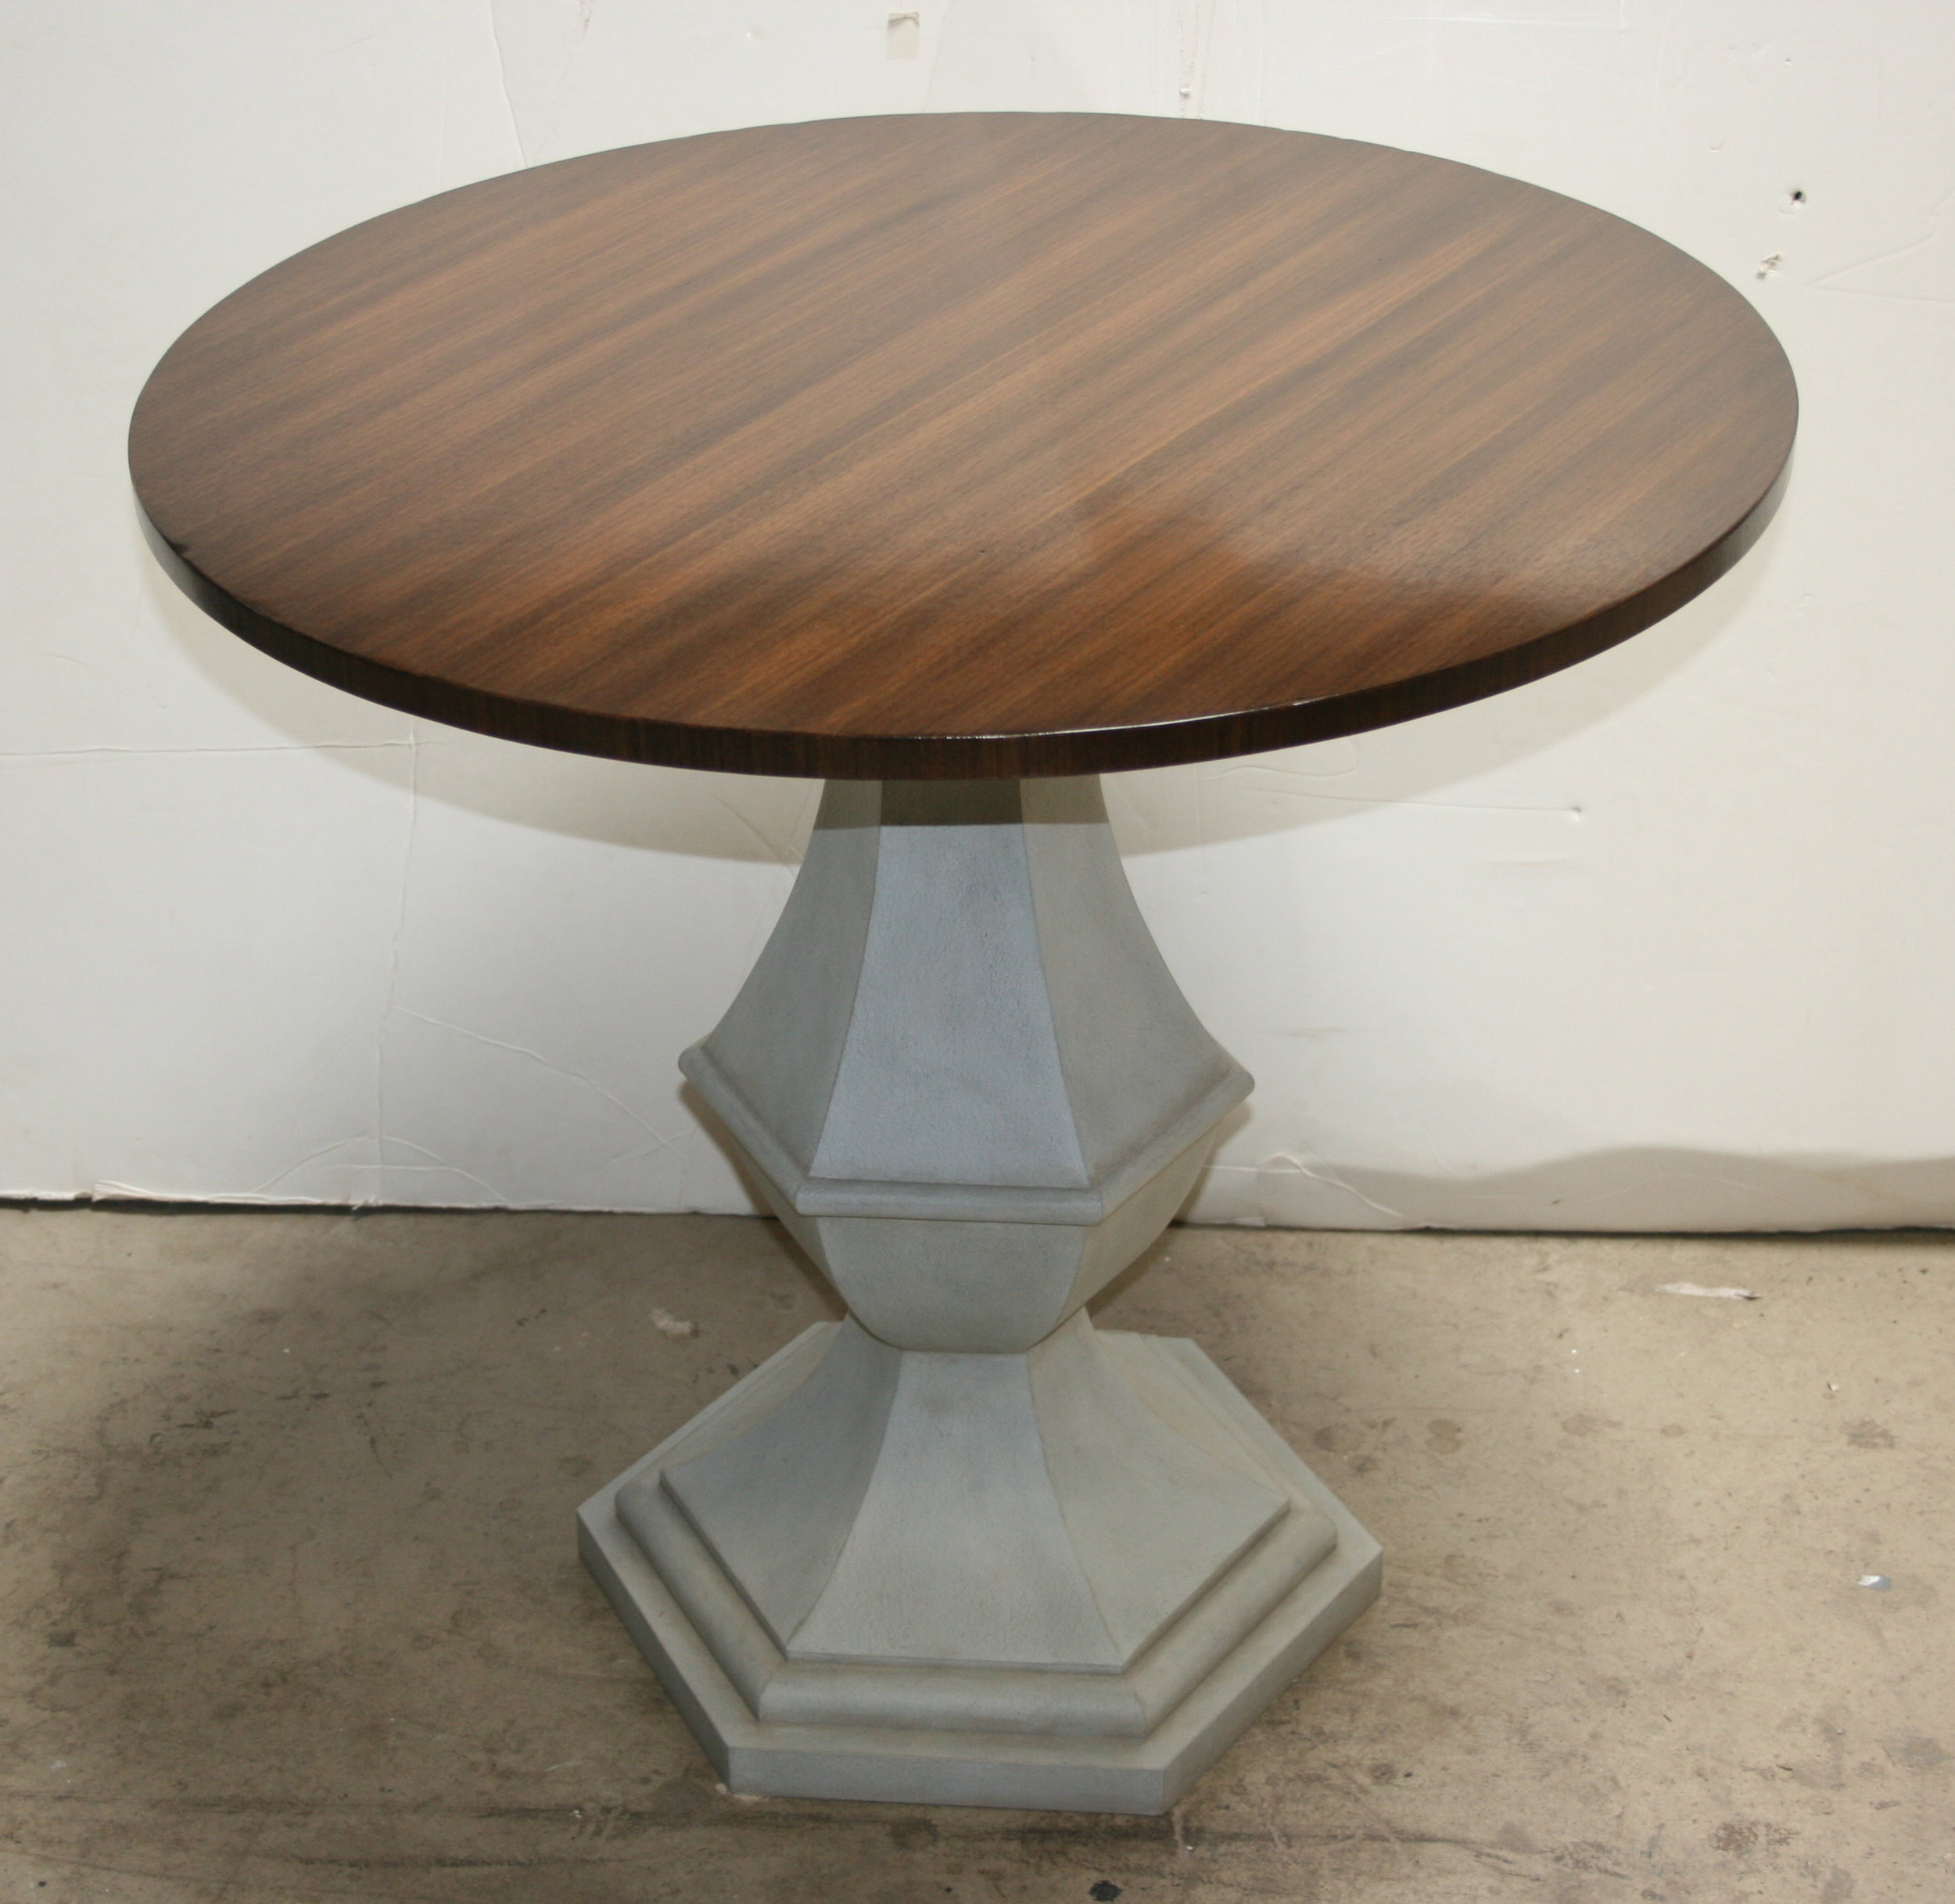 Rosselli Lysy Custom Round Table 2.JPG